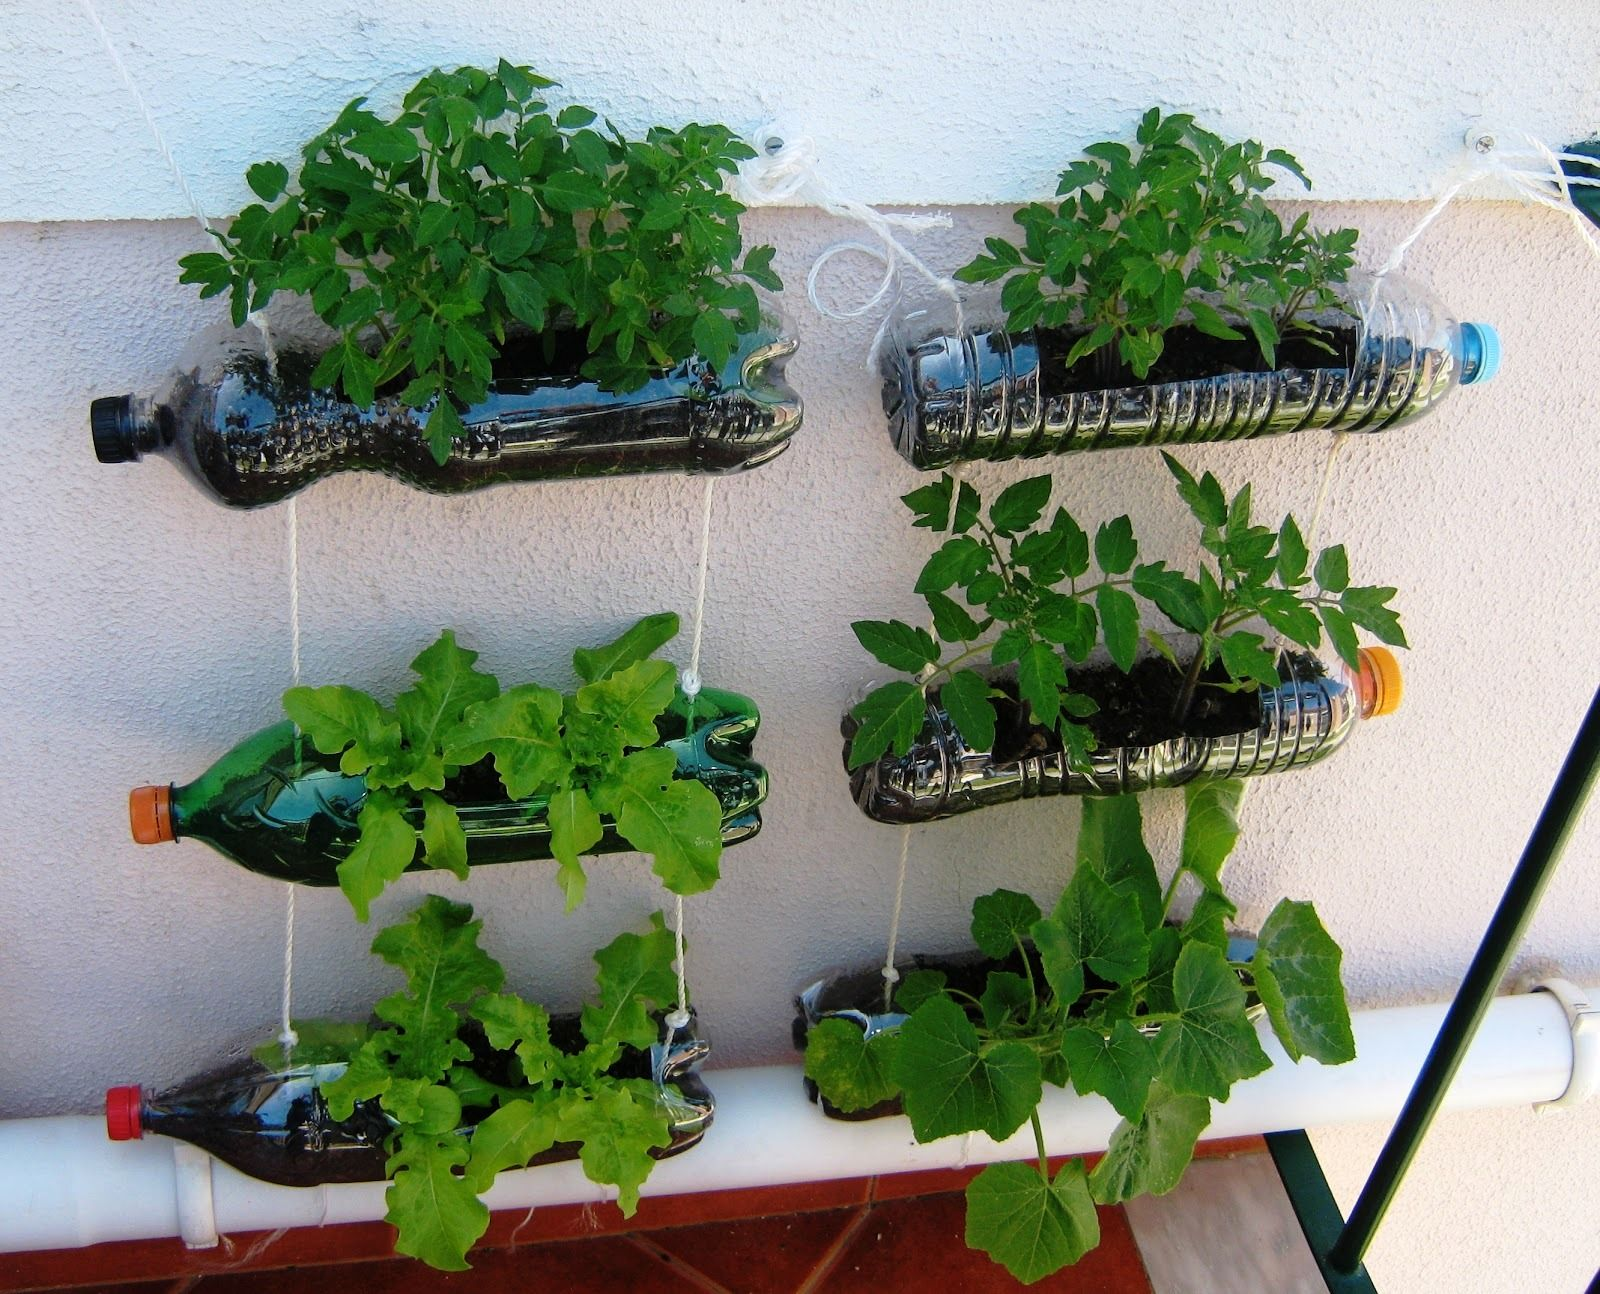 riciclo creativo per l\'orto sul balcone | Growing everything ...